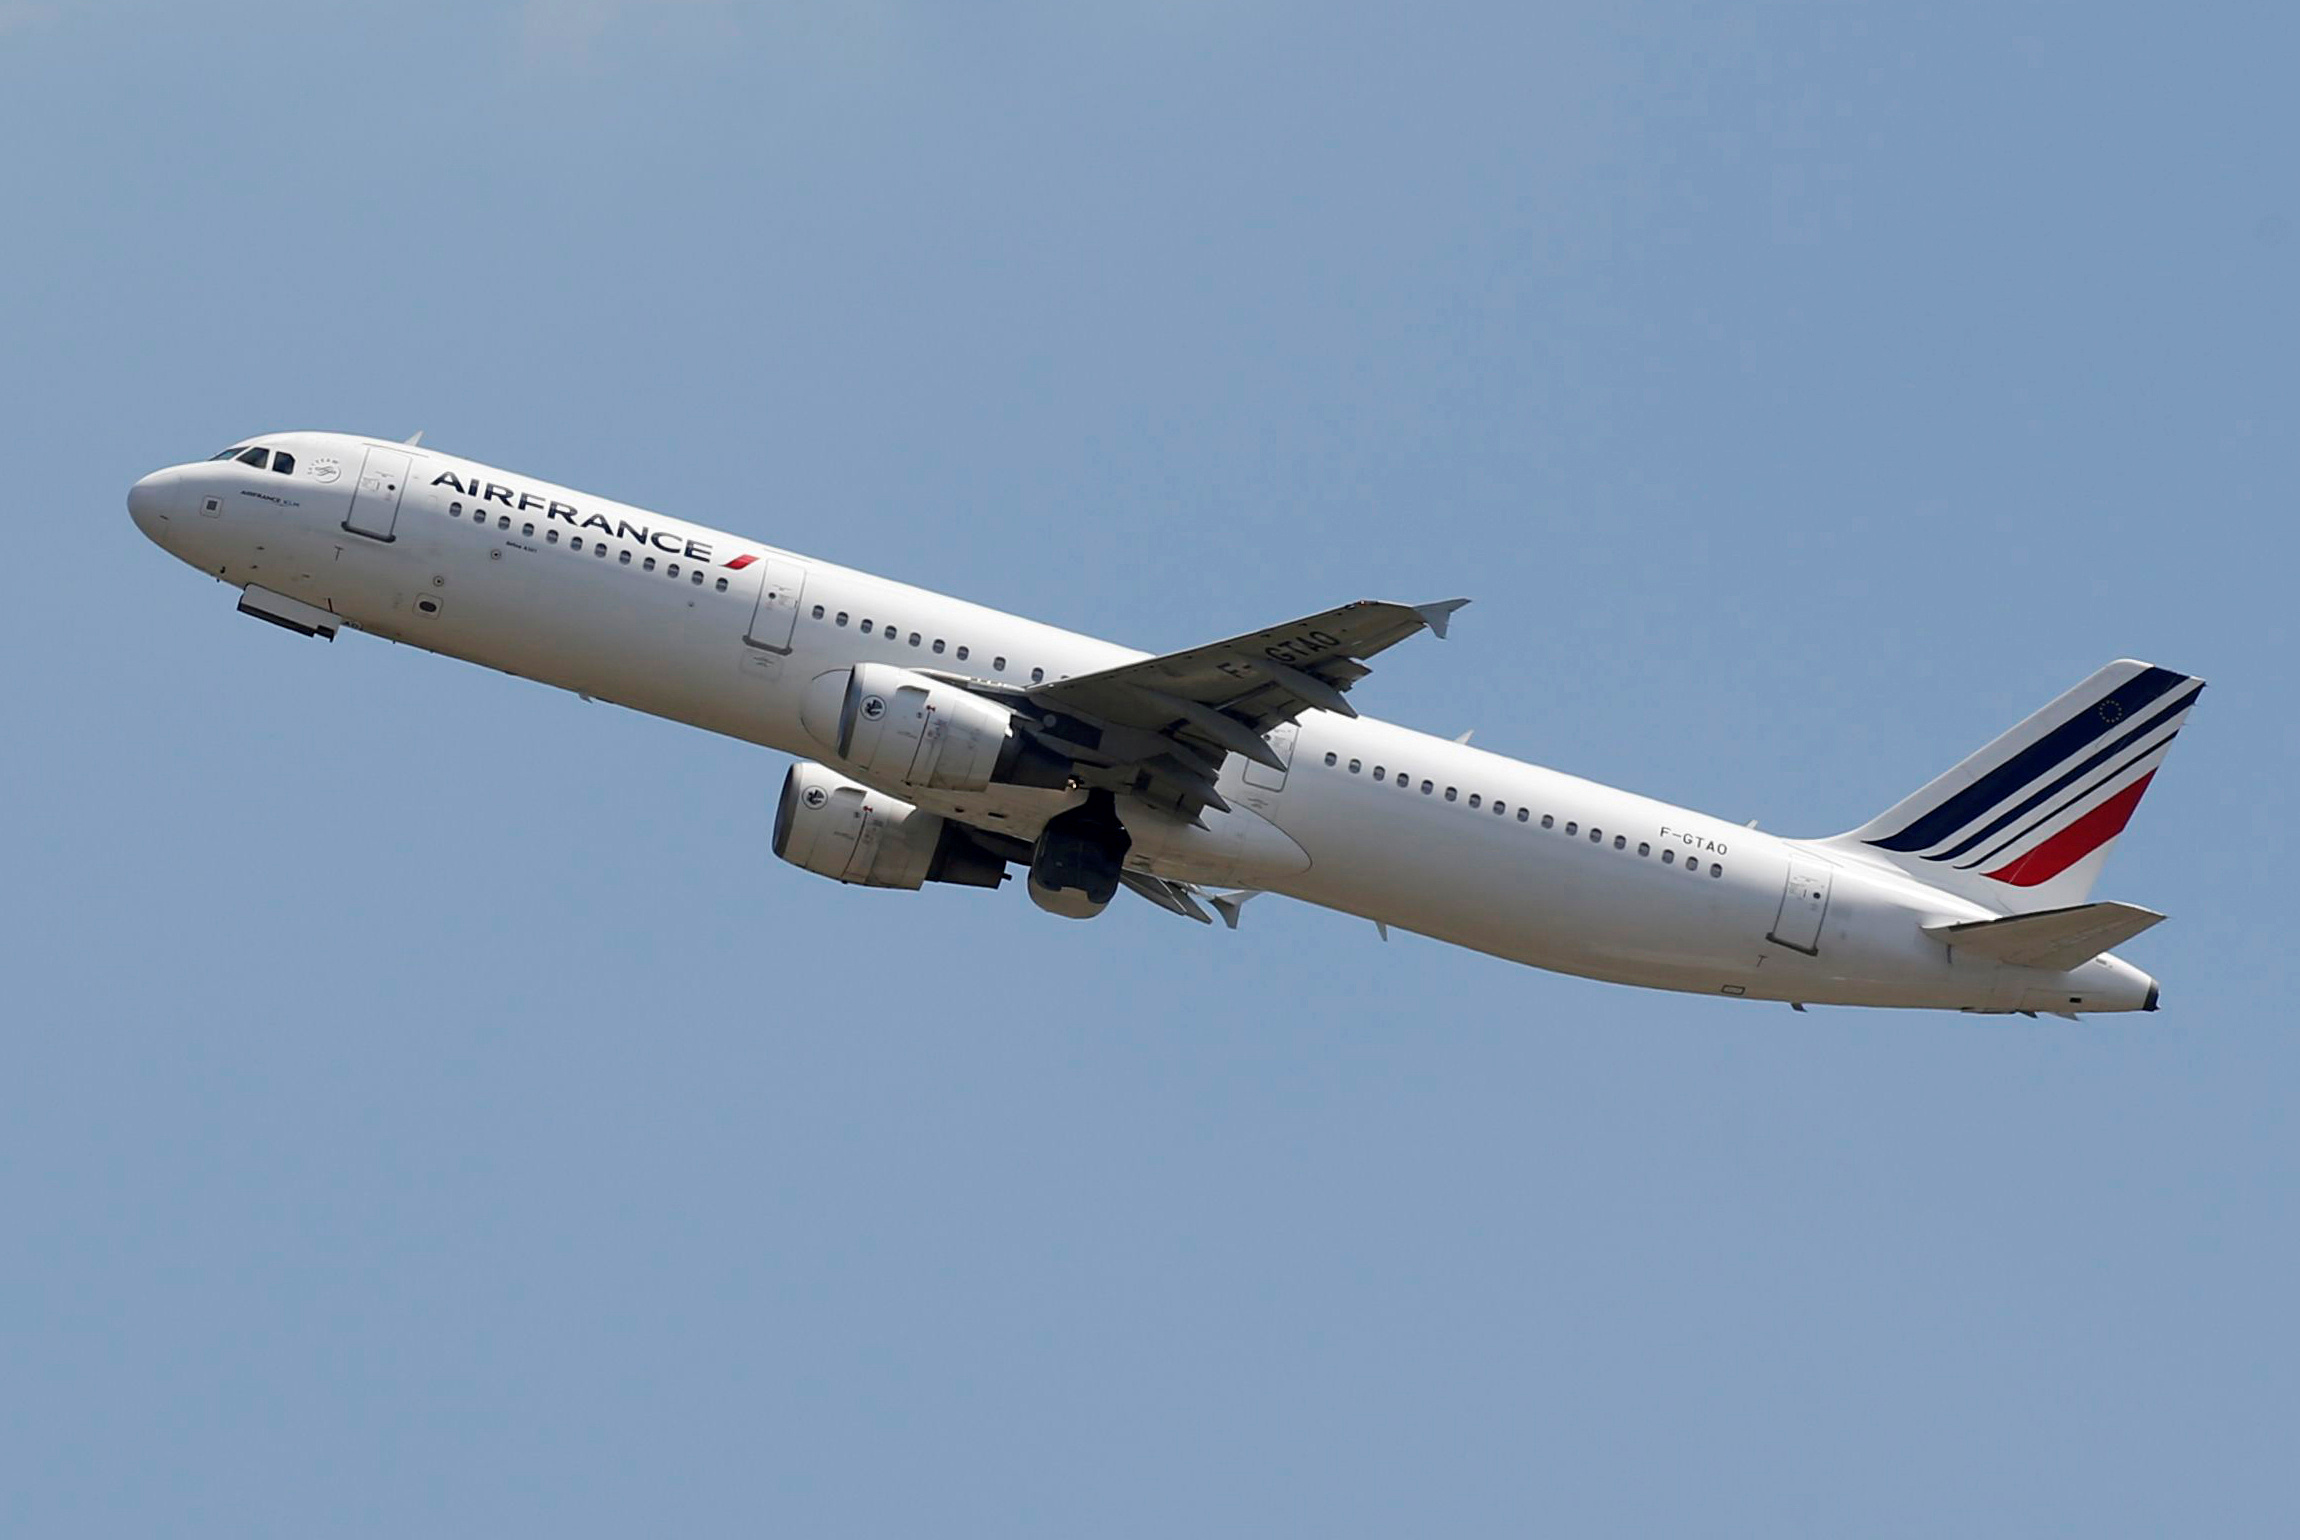 An Air France Airbus A321-200 aircraft takes off in Colomiers near Toulouse, France, July 10, 2018.